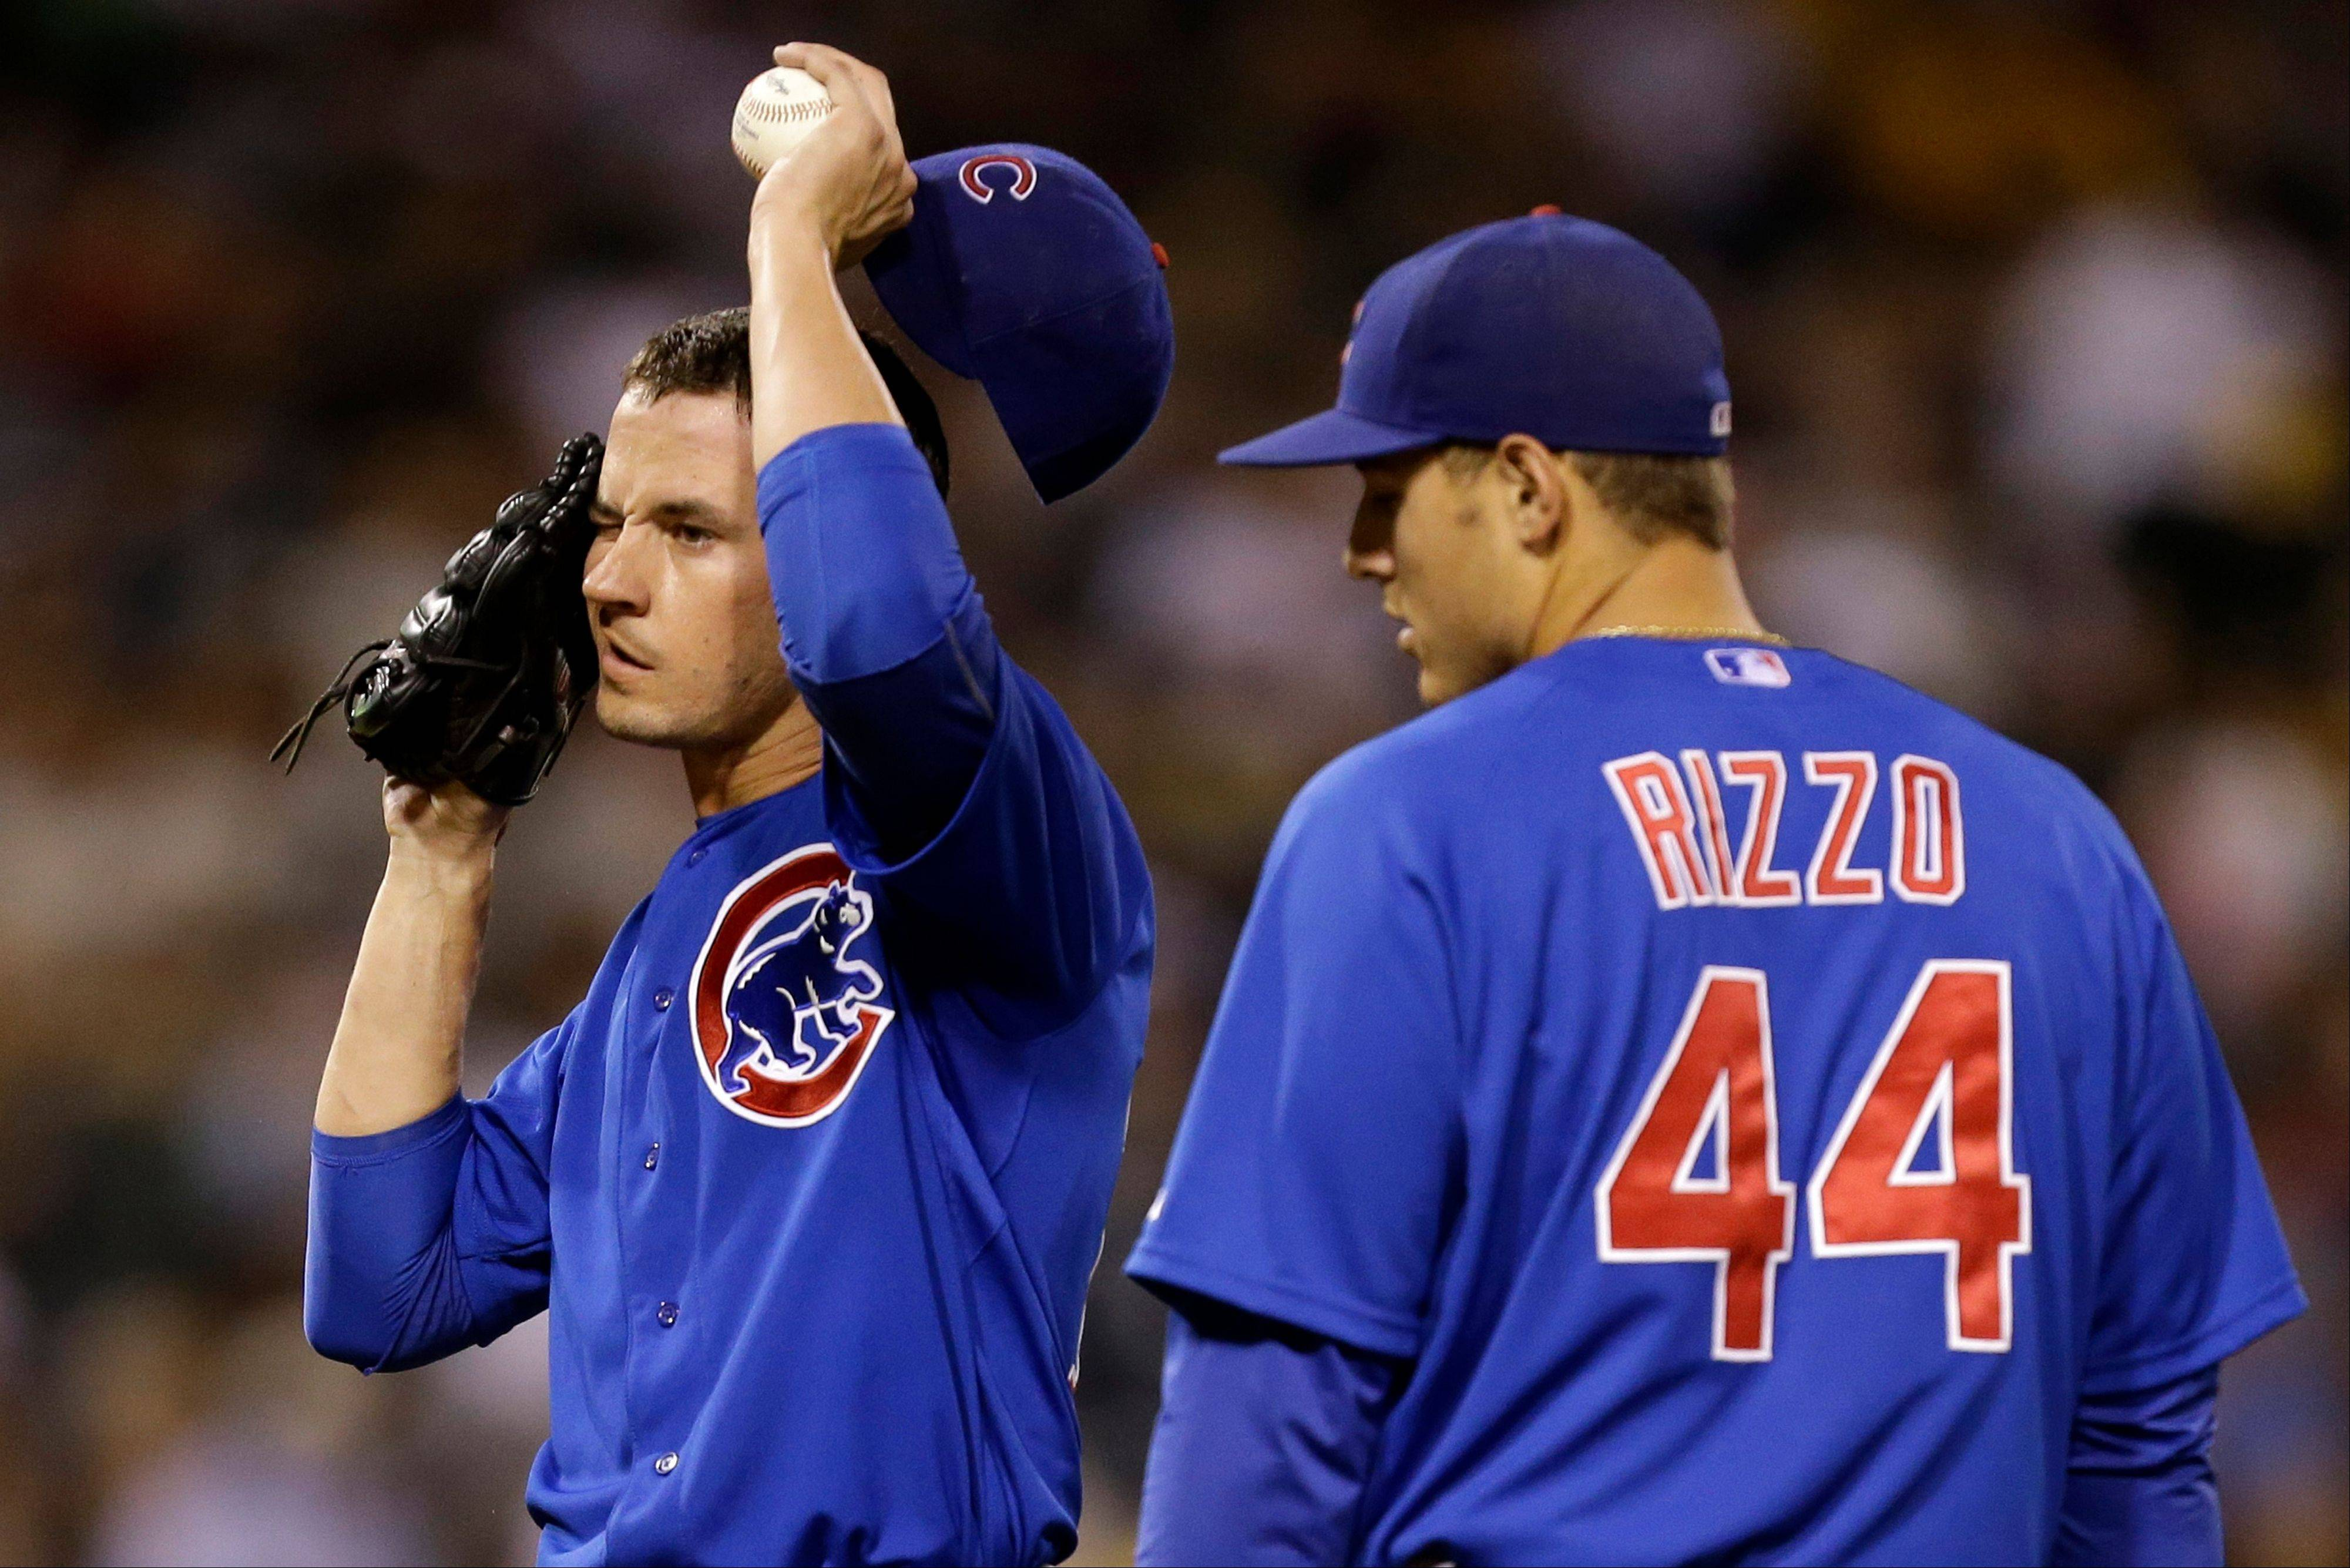 Cubs starting pitcher Chris Rusin is visited on the mound by first baseman Anthony Rizzo after giving up an RBI single to Pittsburgh�s Pedro Alvarez in the fourth inning Thursday night.